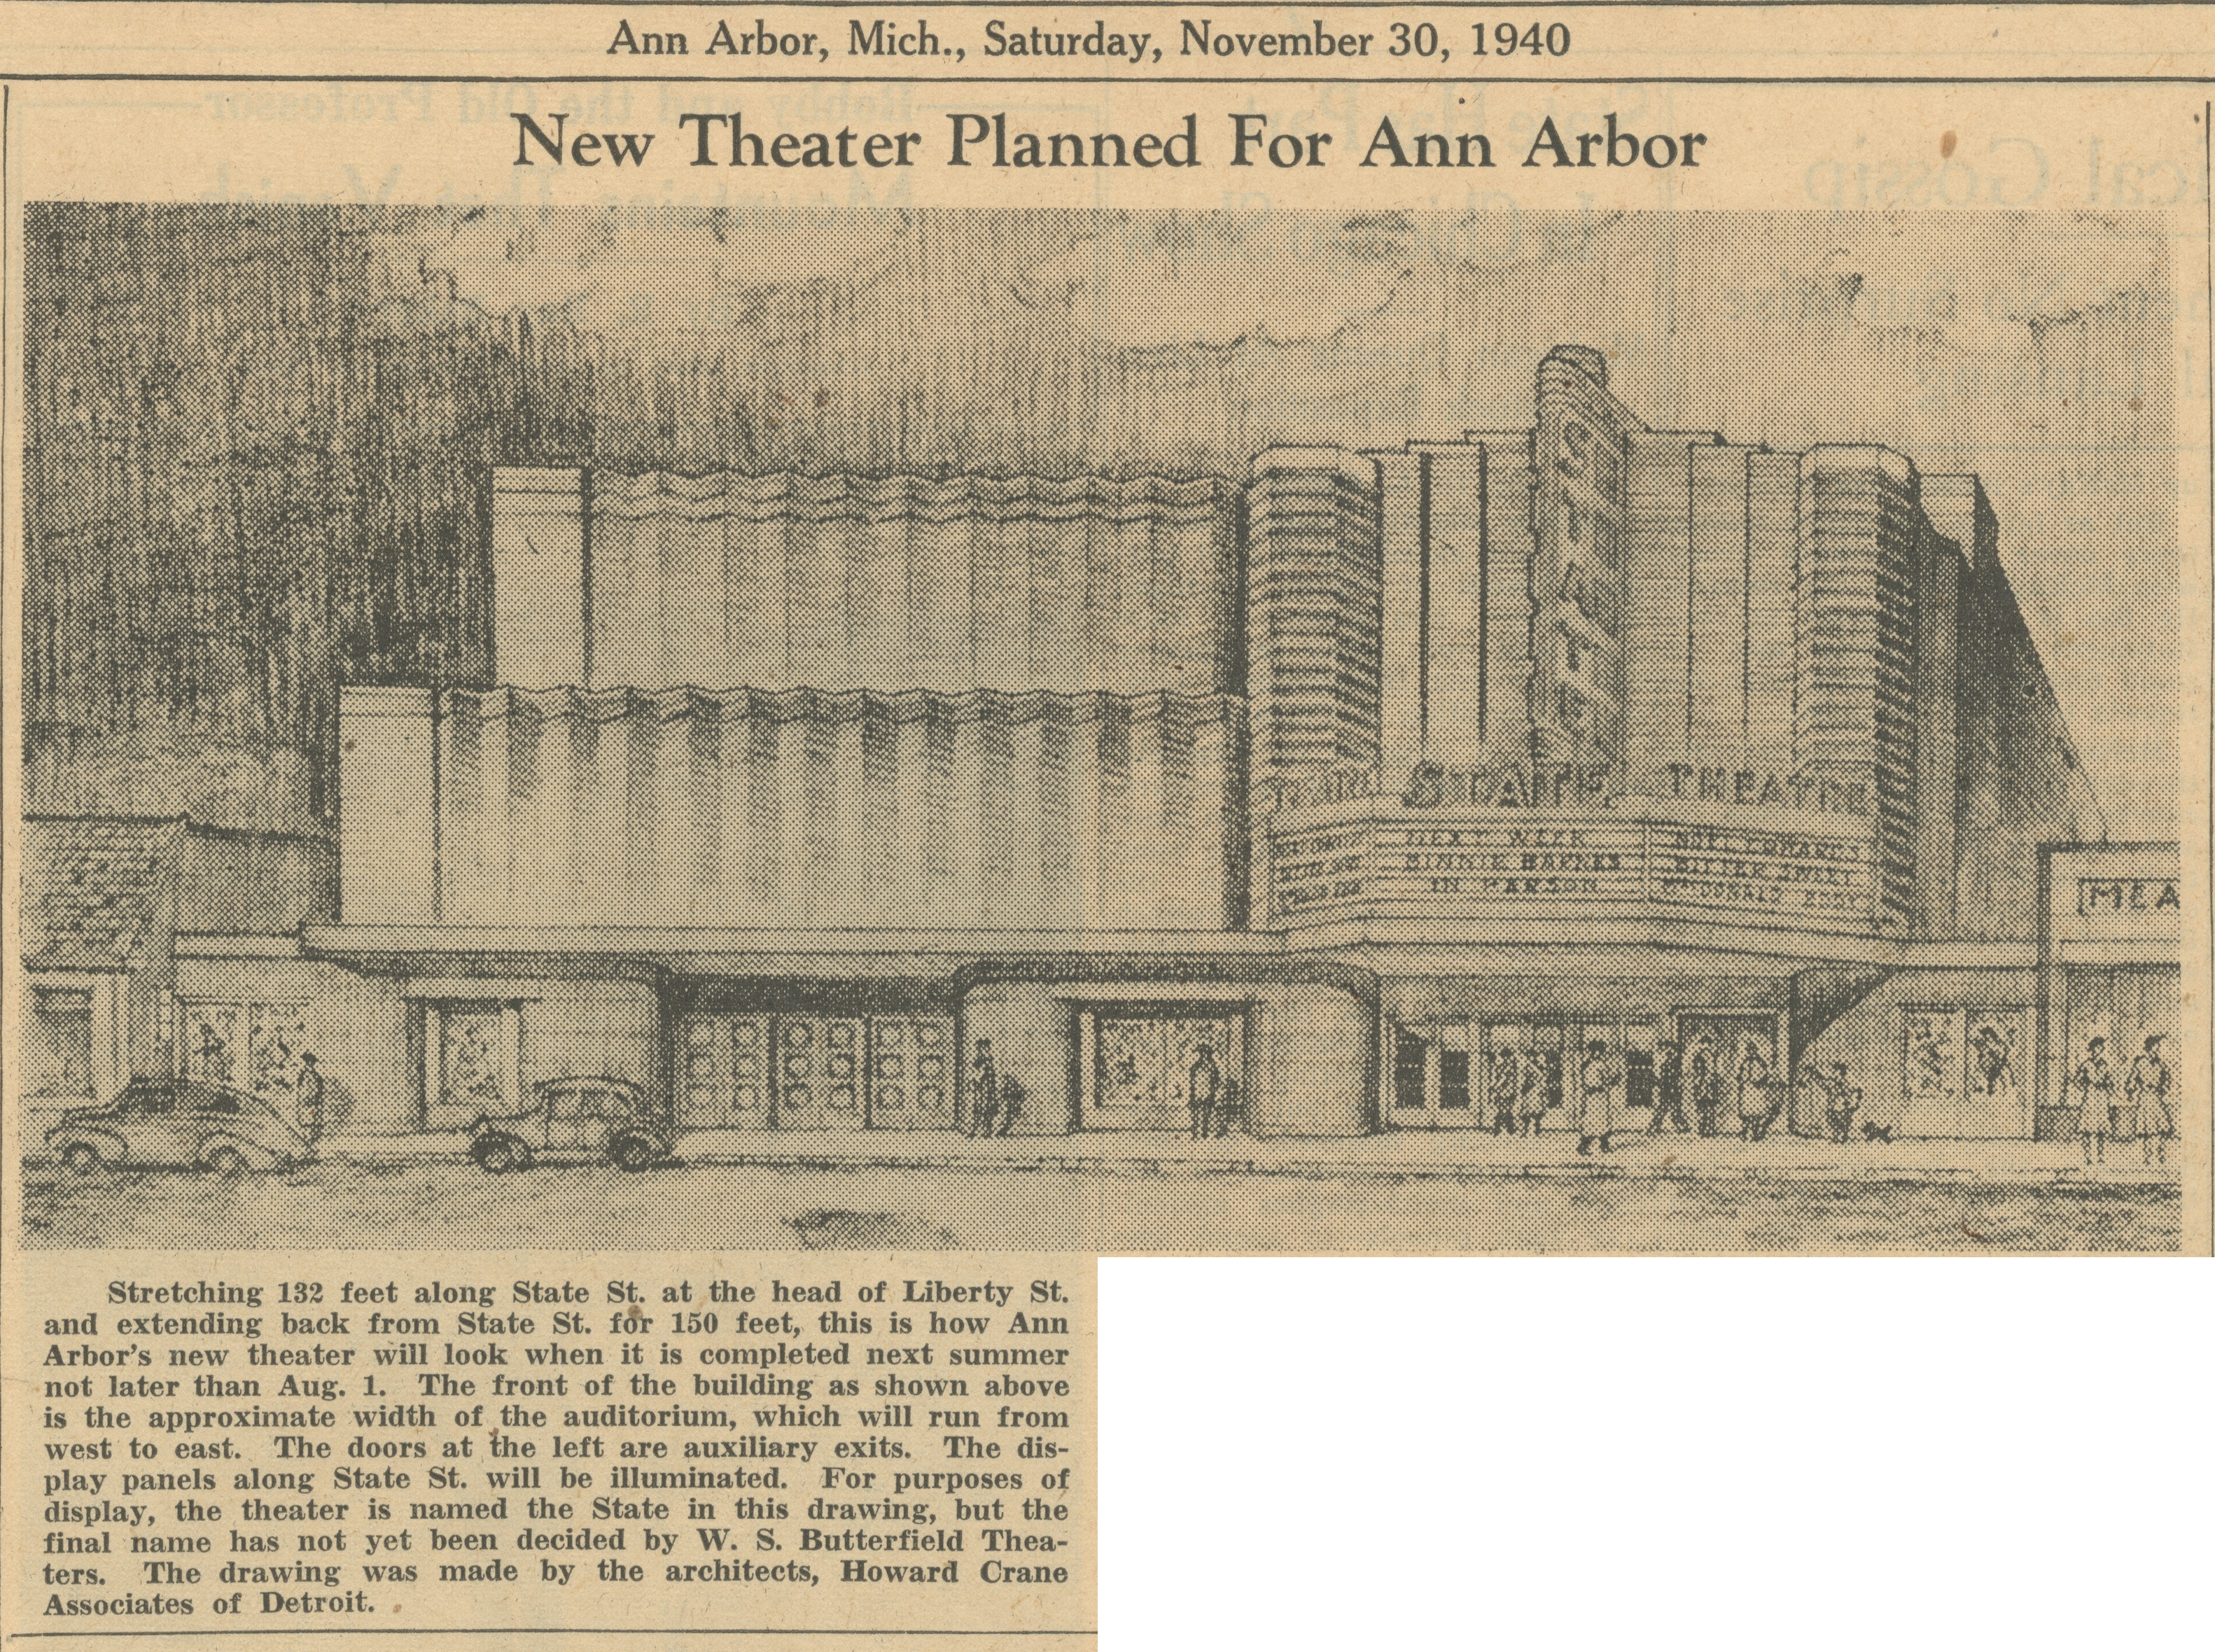 New Theater Planned For Ann Arbor image